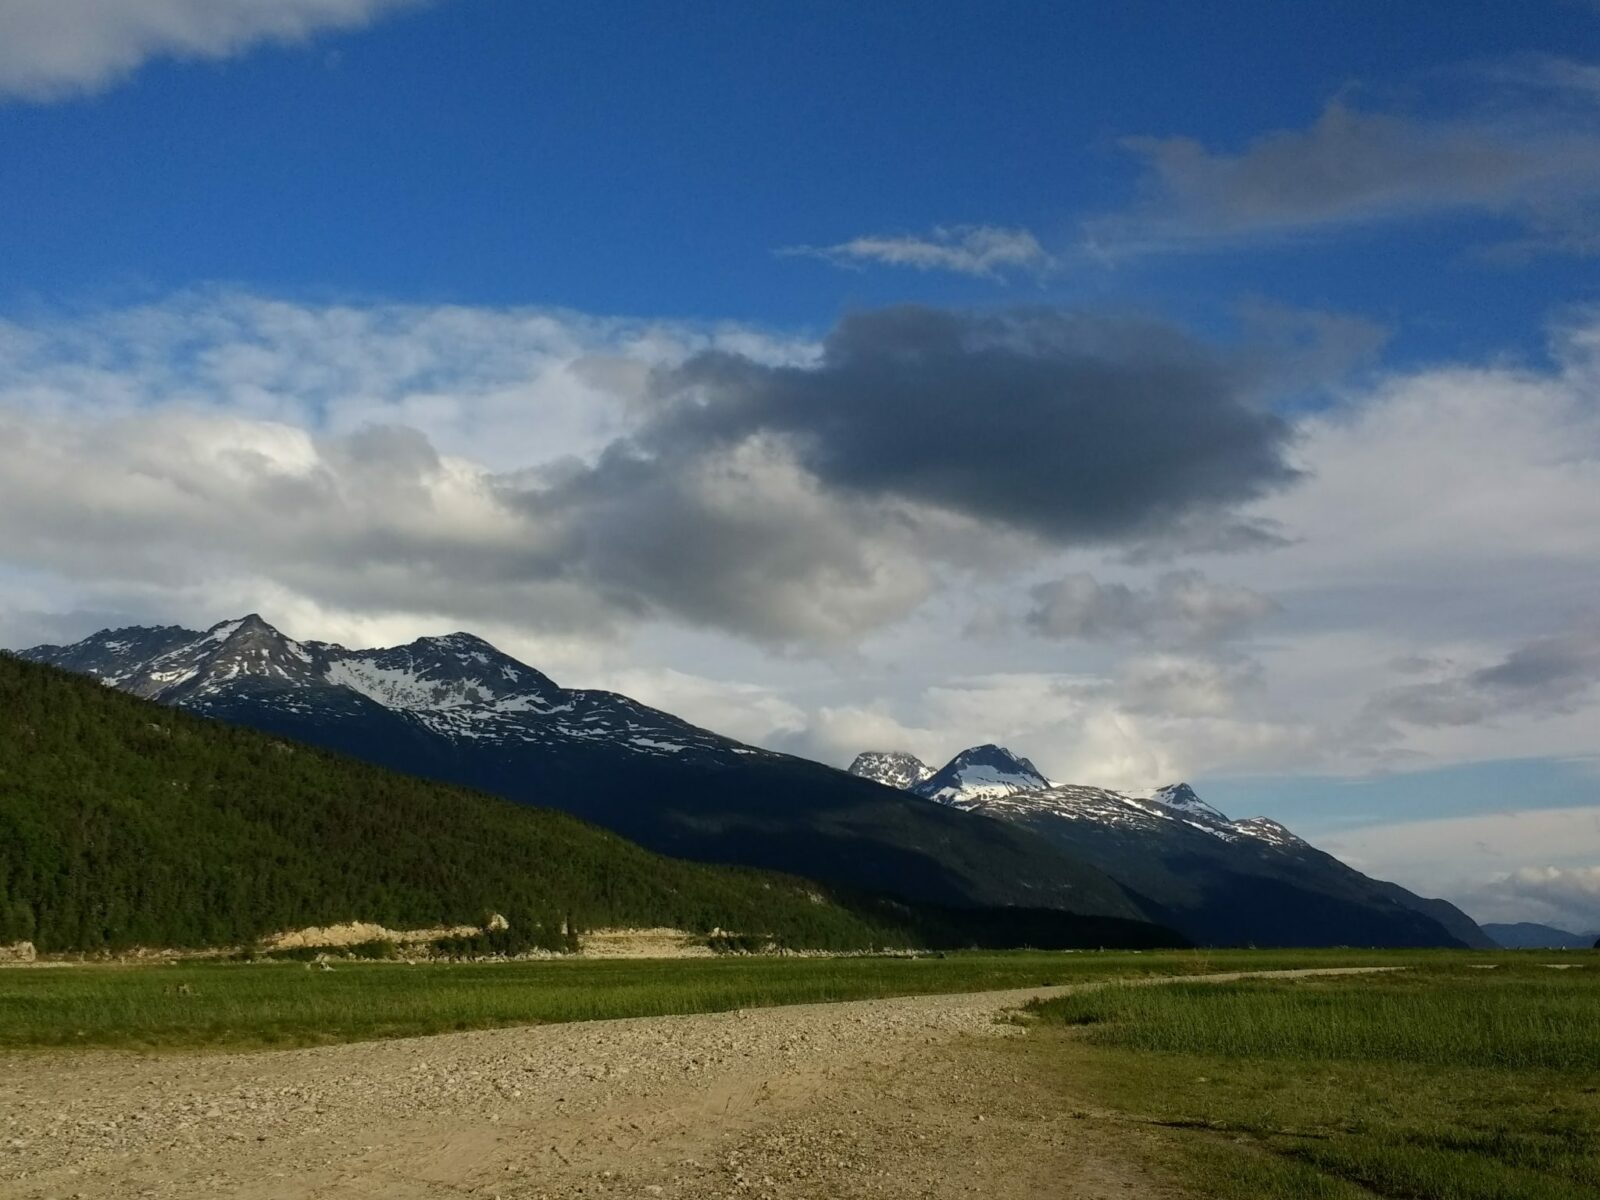 A wide flat gravel and grassy area surrounded by evergreen trees and high mountains near the Dyea campground in Alaska